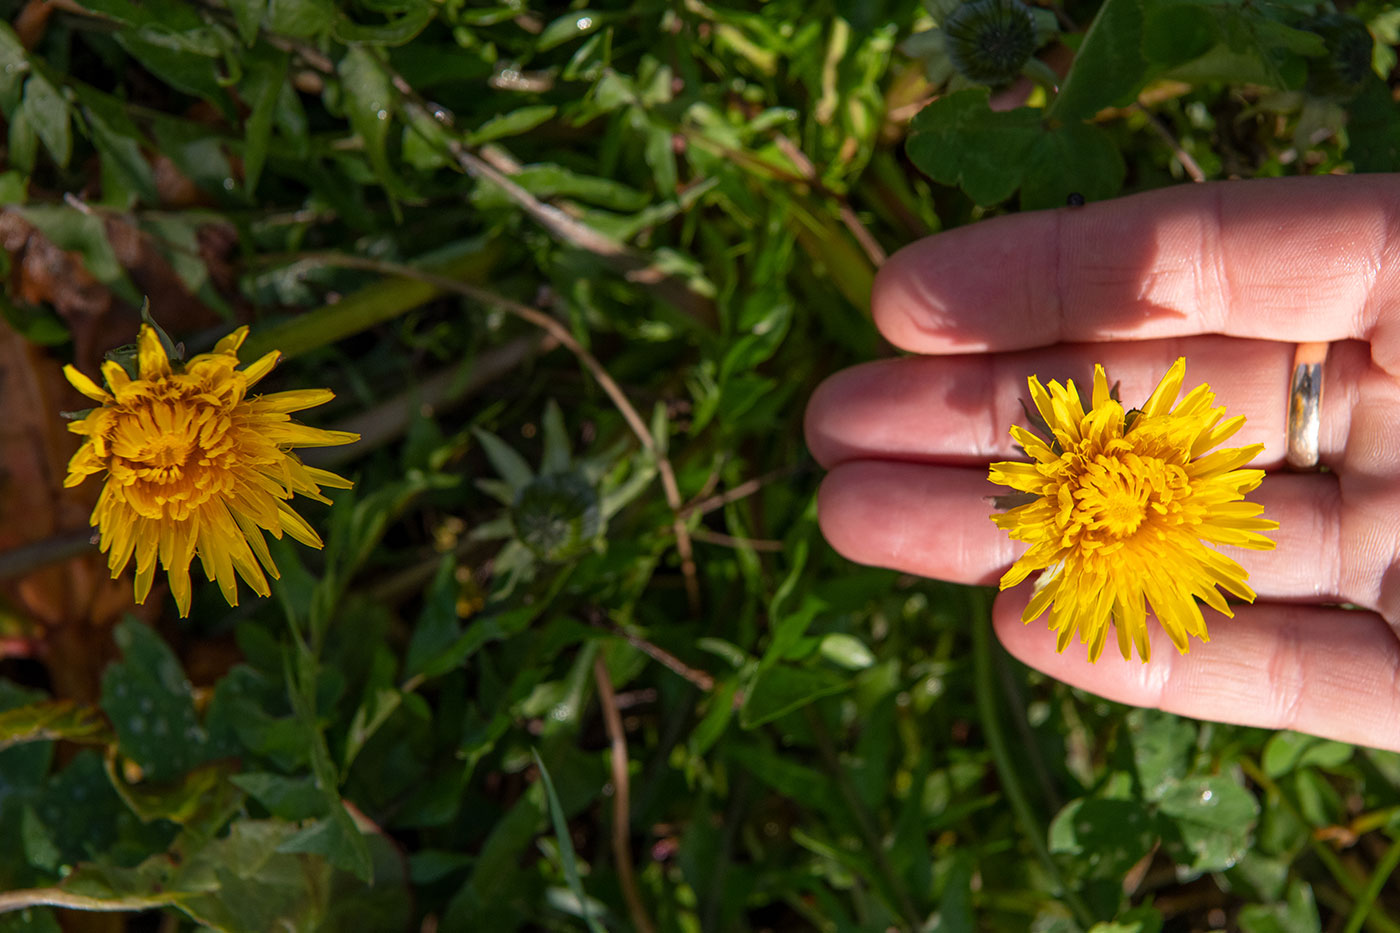 Dandelion flower held between the fingers.